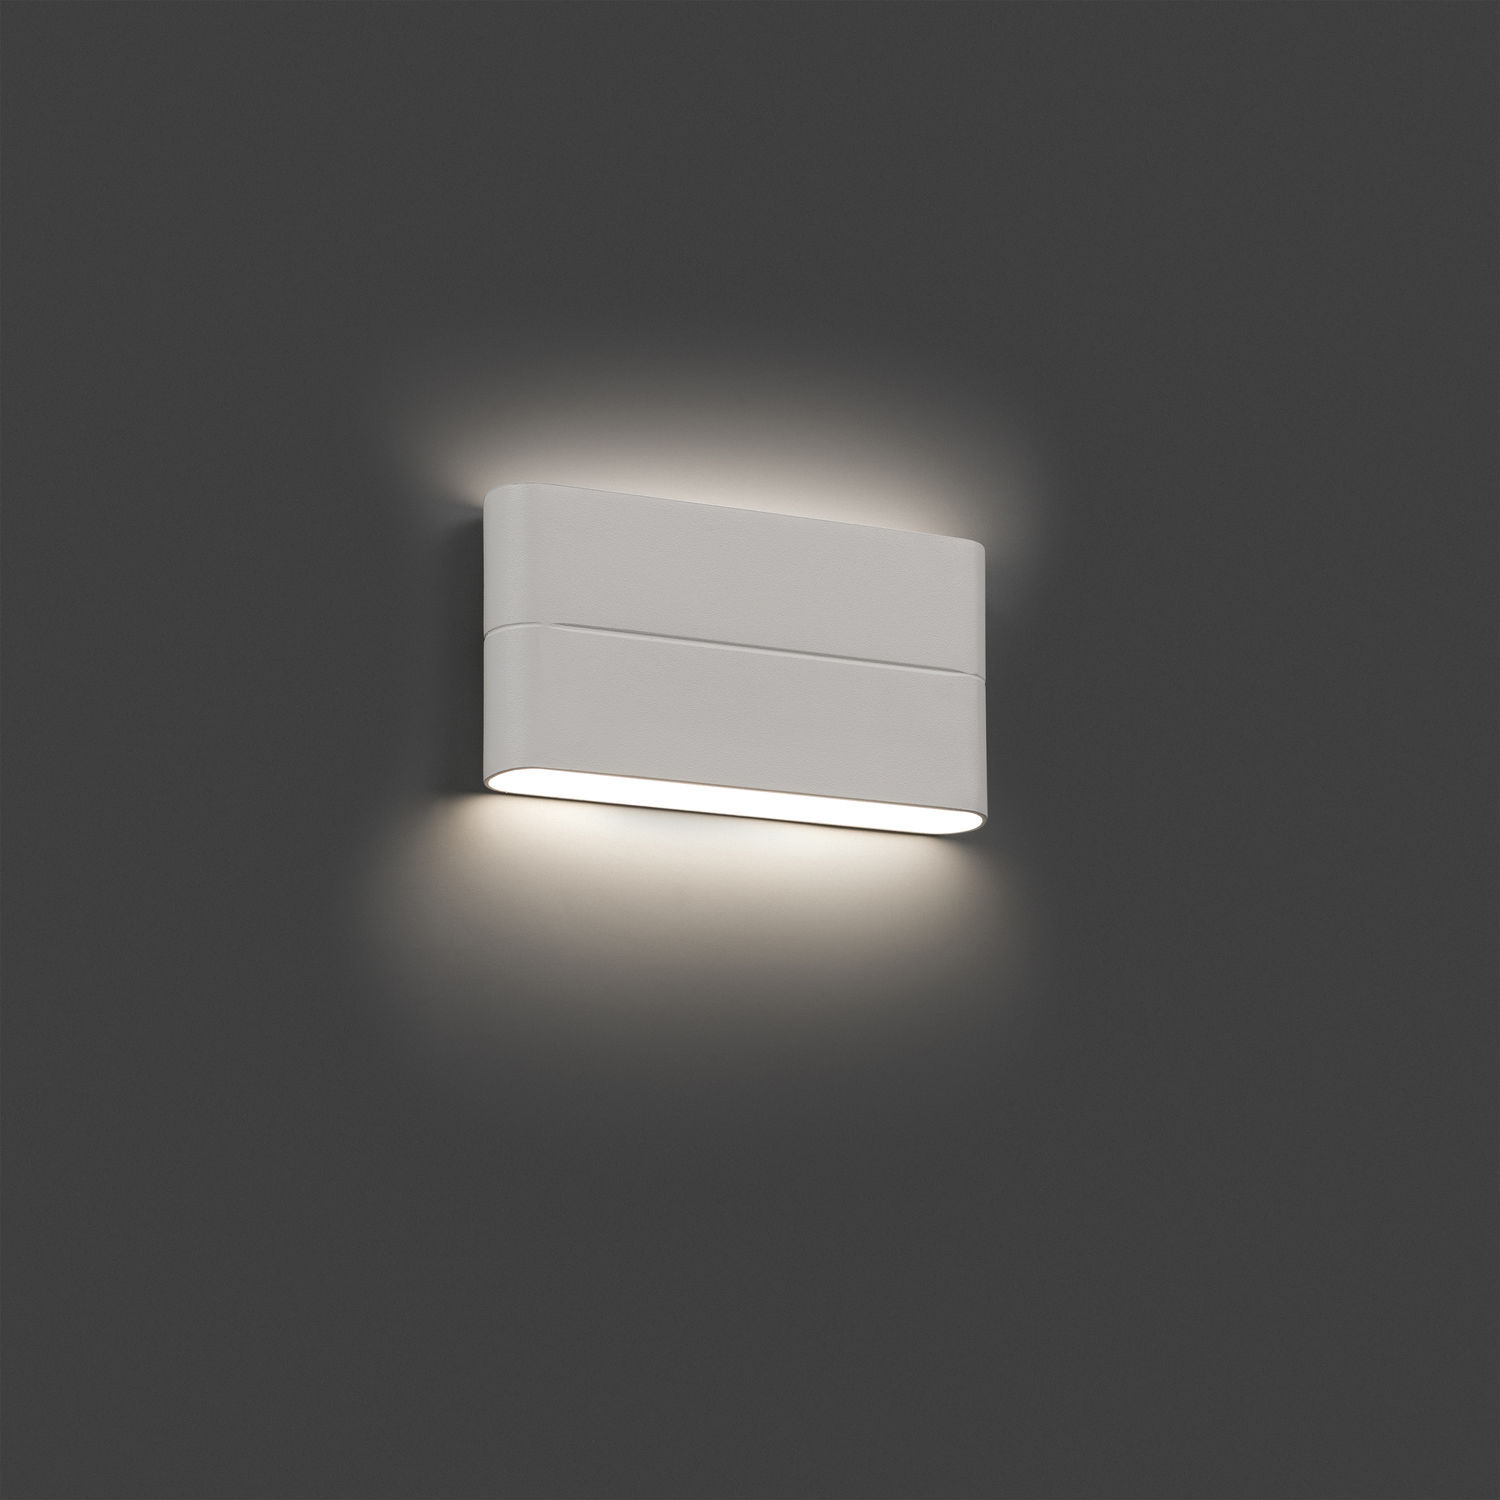 Applique murale d 39 ext rieur aday 2 led ip54 blanc l17 for Applique murale exterieur amazon